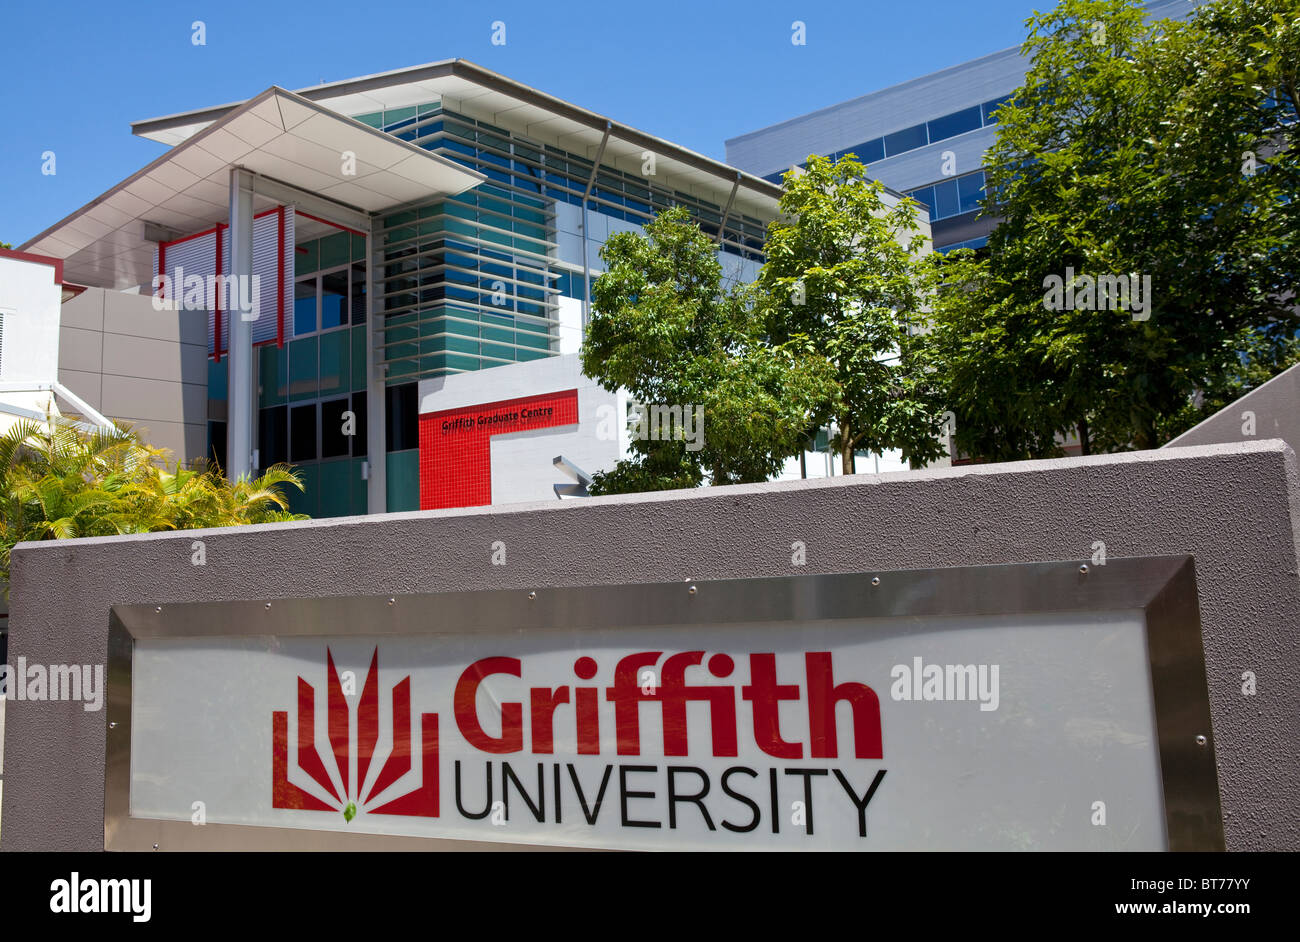 how to change a password griffith university